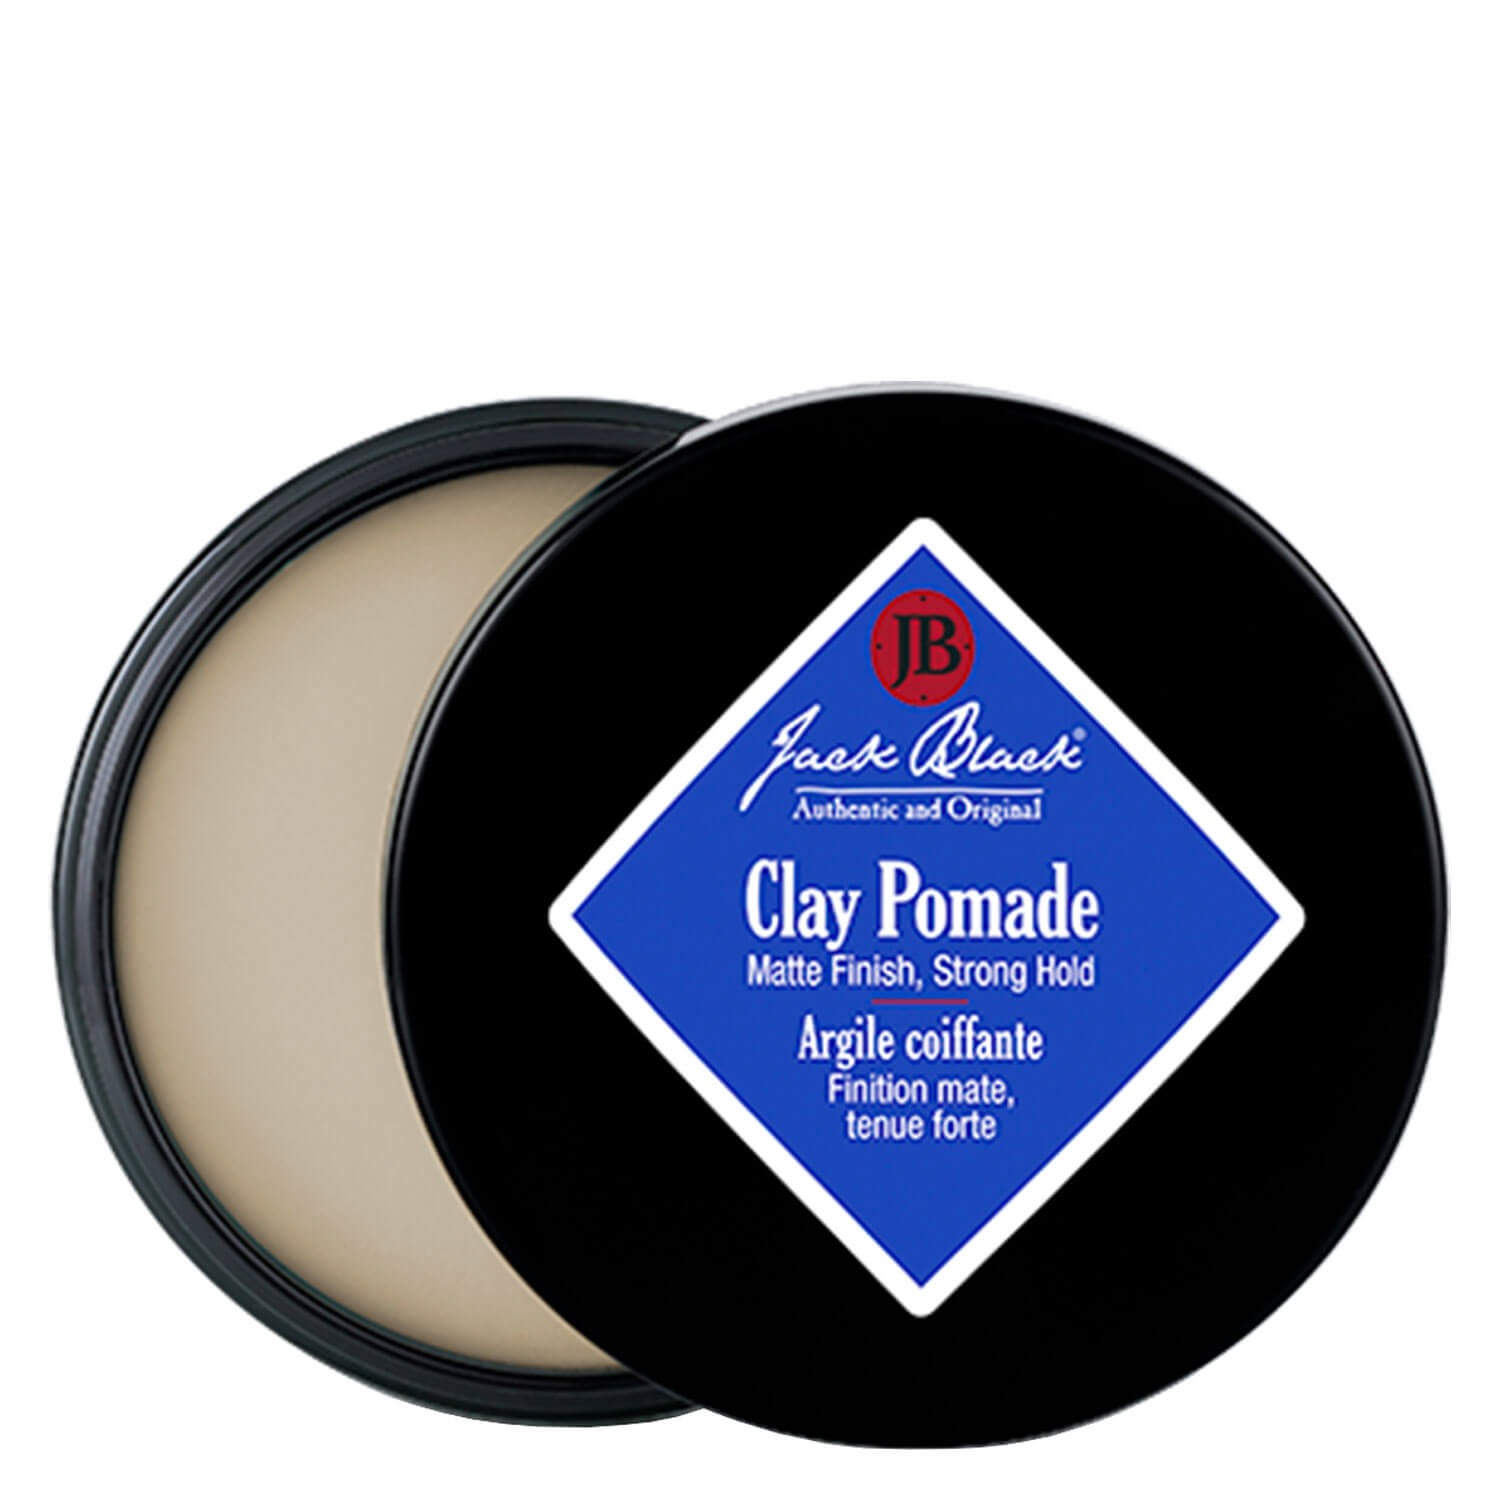 Jack Black - Clay Pomade